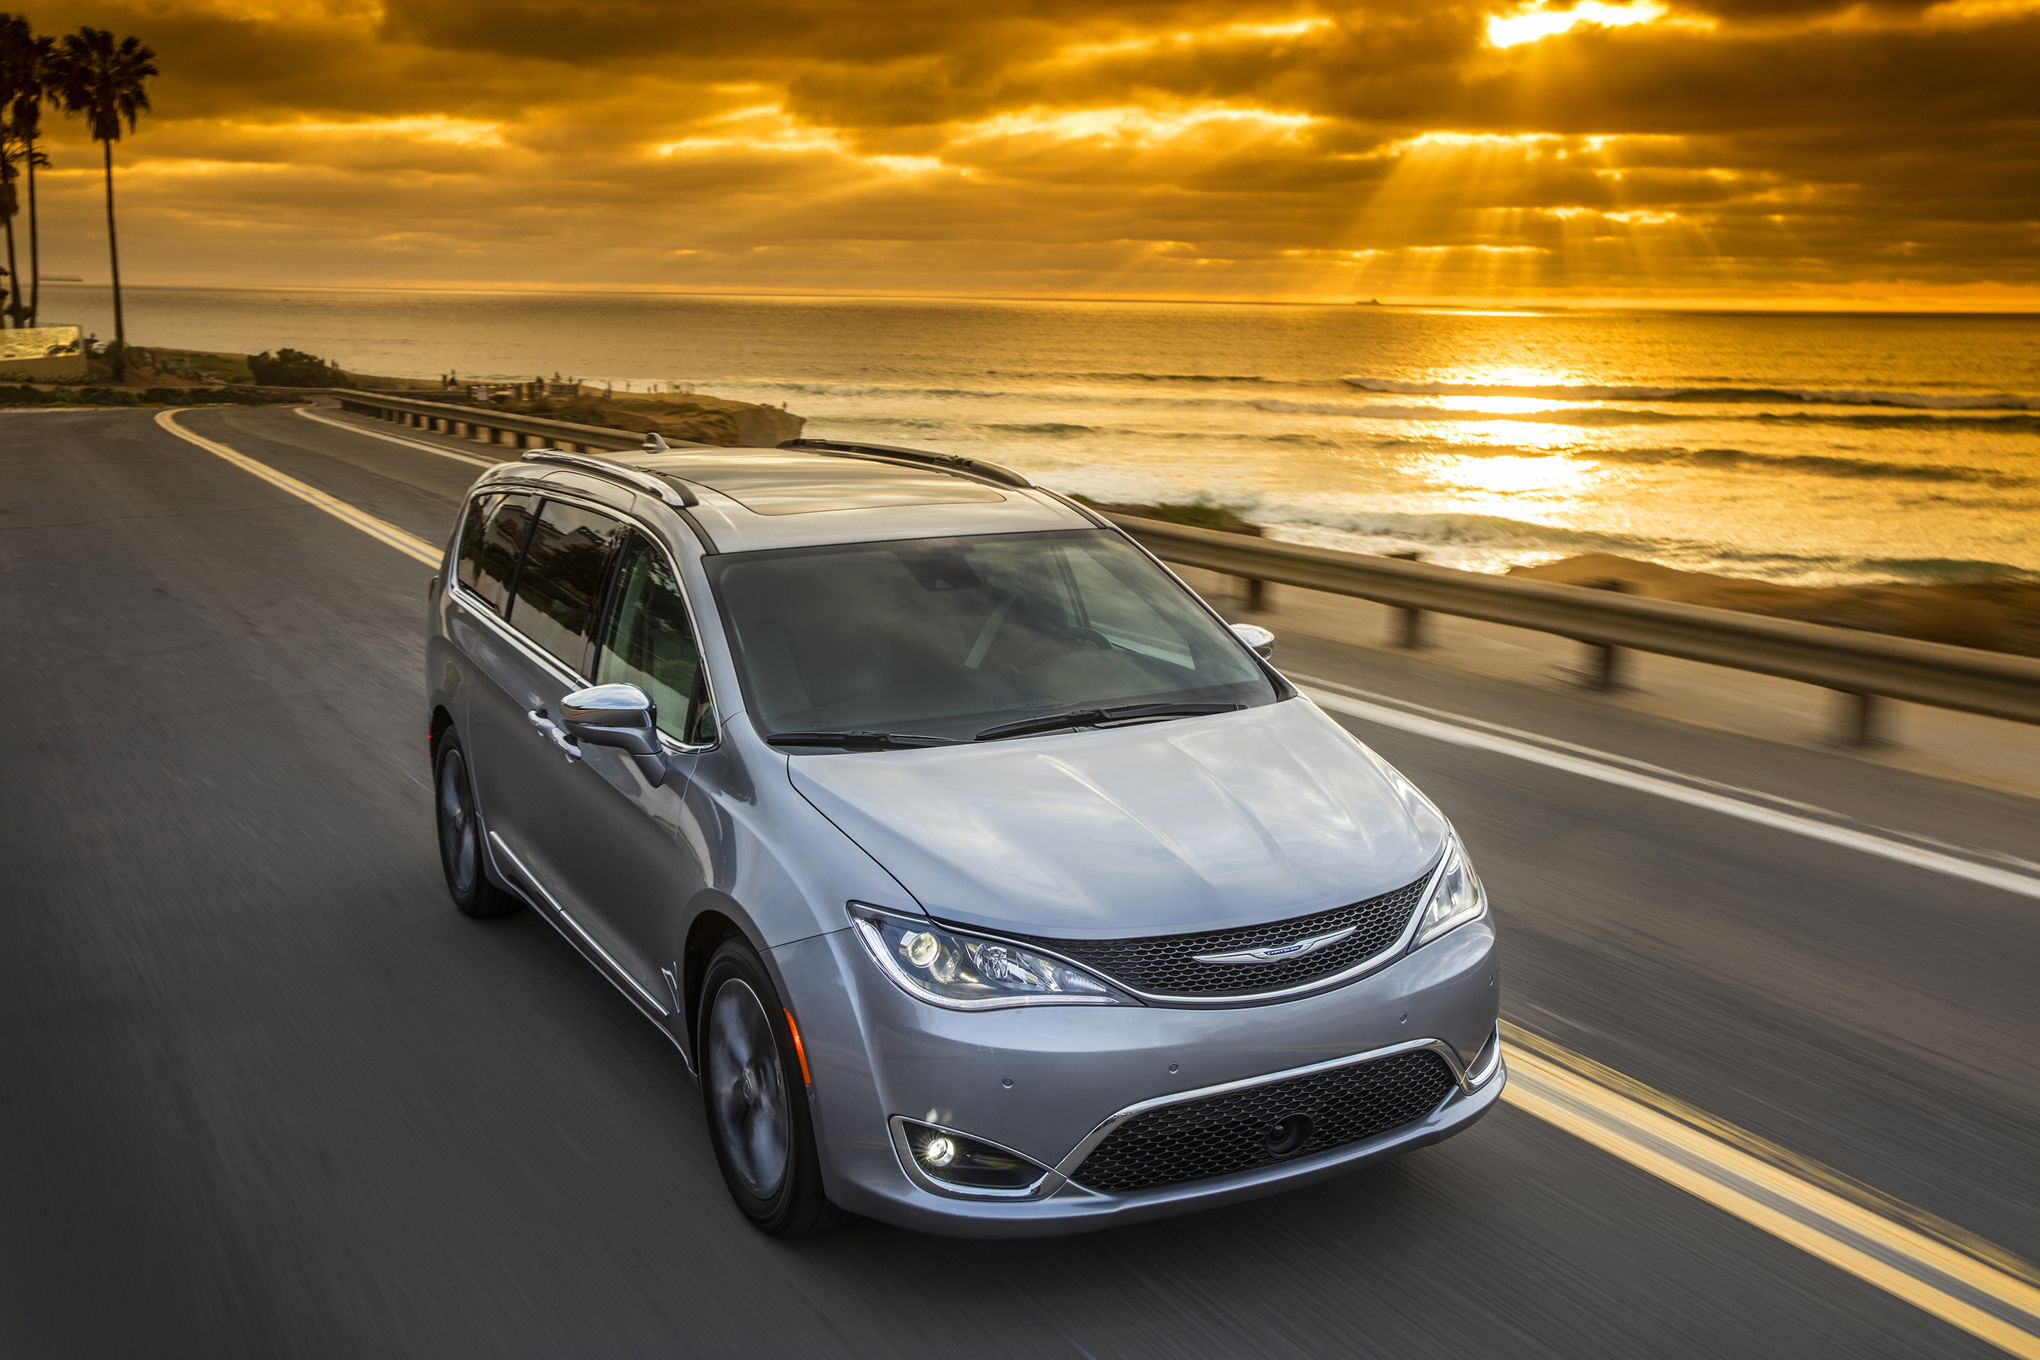 car review heels on wheels 2017 chrysler pacifica review. Cars Review. Best American Auto & Cars Review